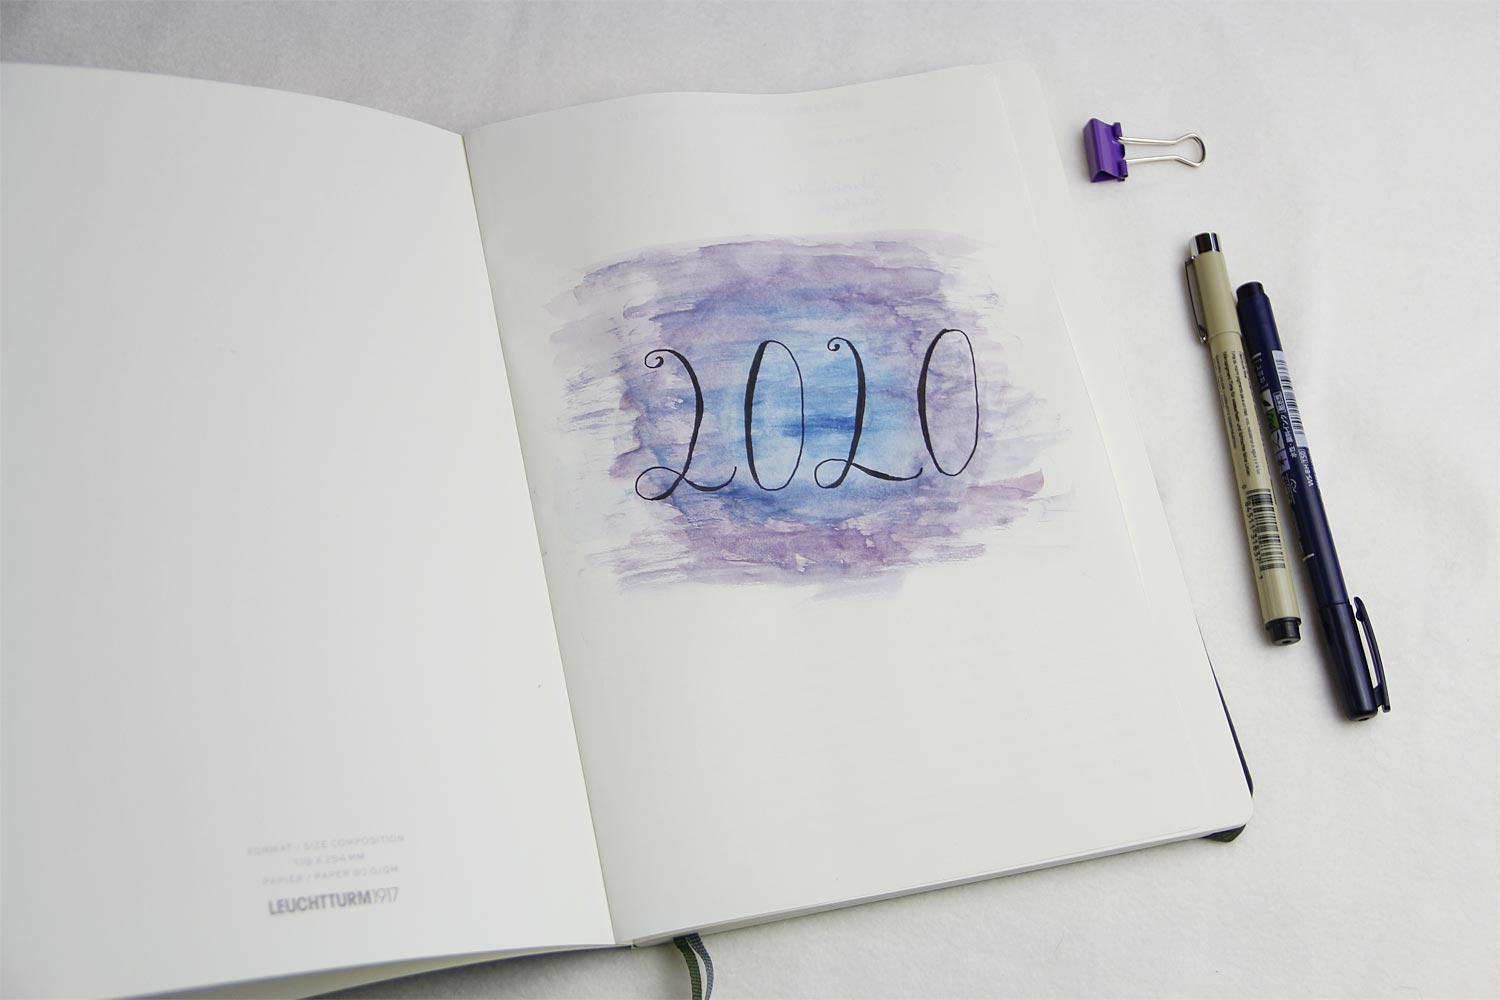 Bullet Journal 2020 - die Cover Seite